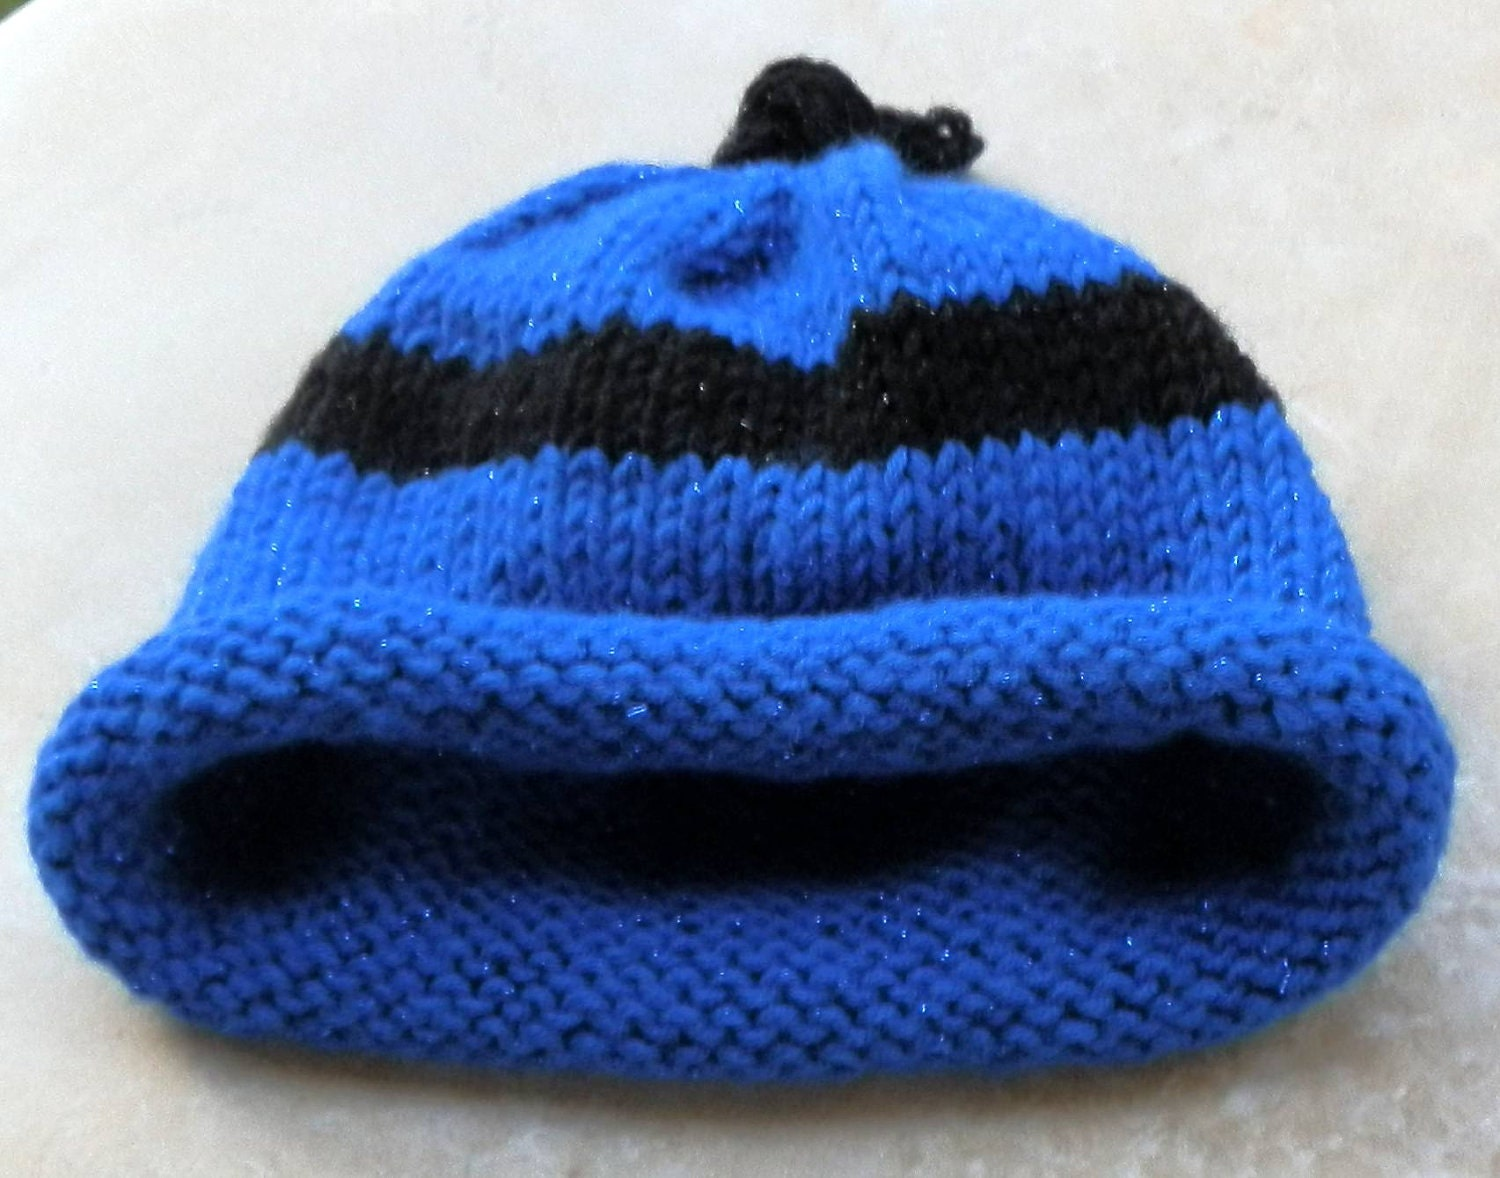 Knitting Pattern Umbilical Cord Hat : Umbilical Cord Baby Beanie Hat In Sparkle Brilliant Blue and